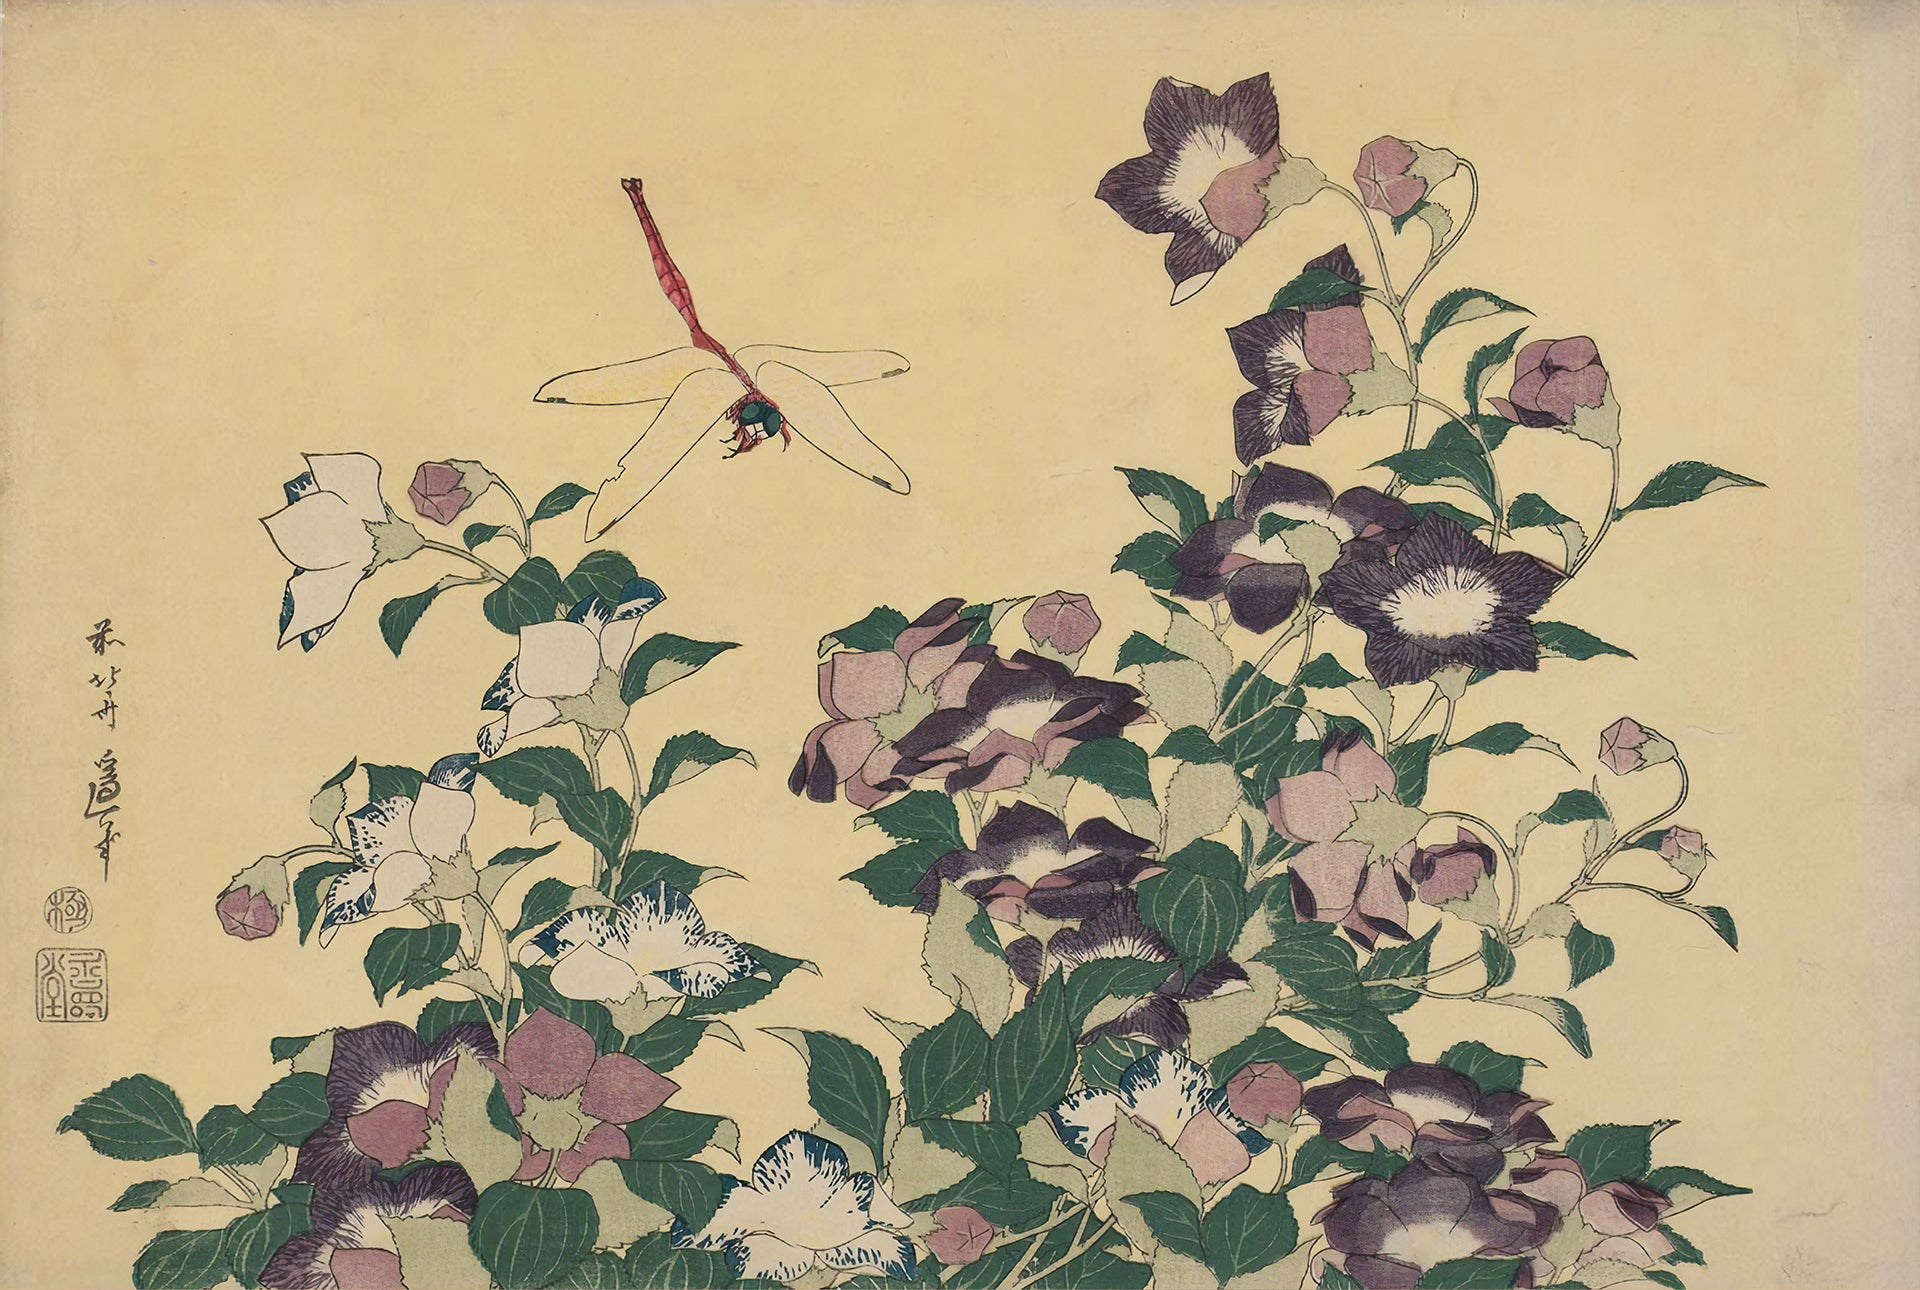 Bellflower and Dragonfly (1833) by Hokusai